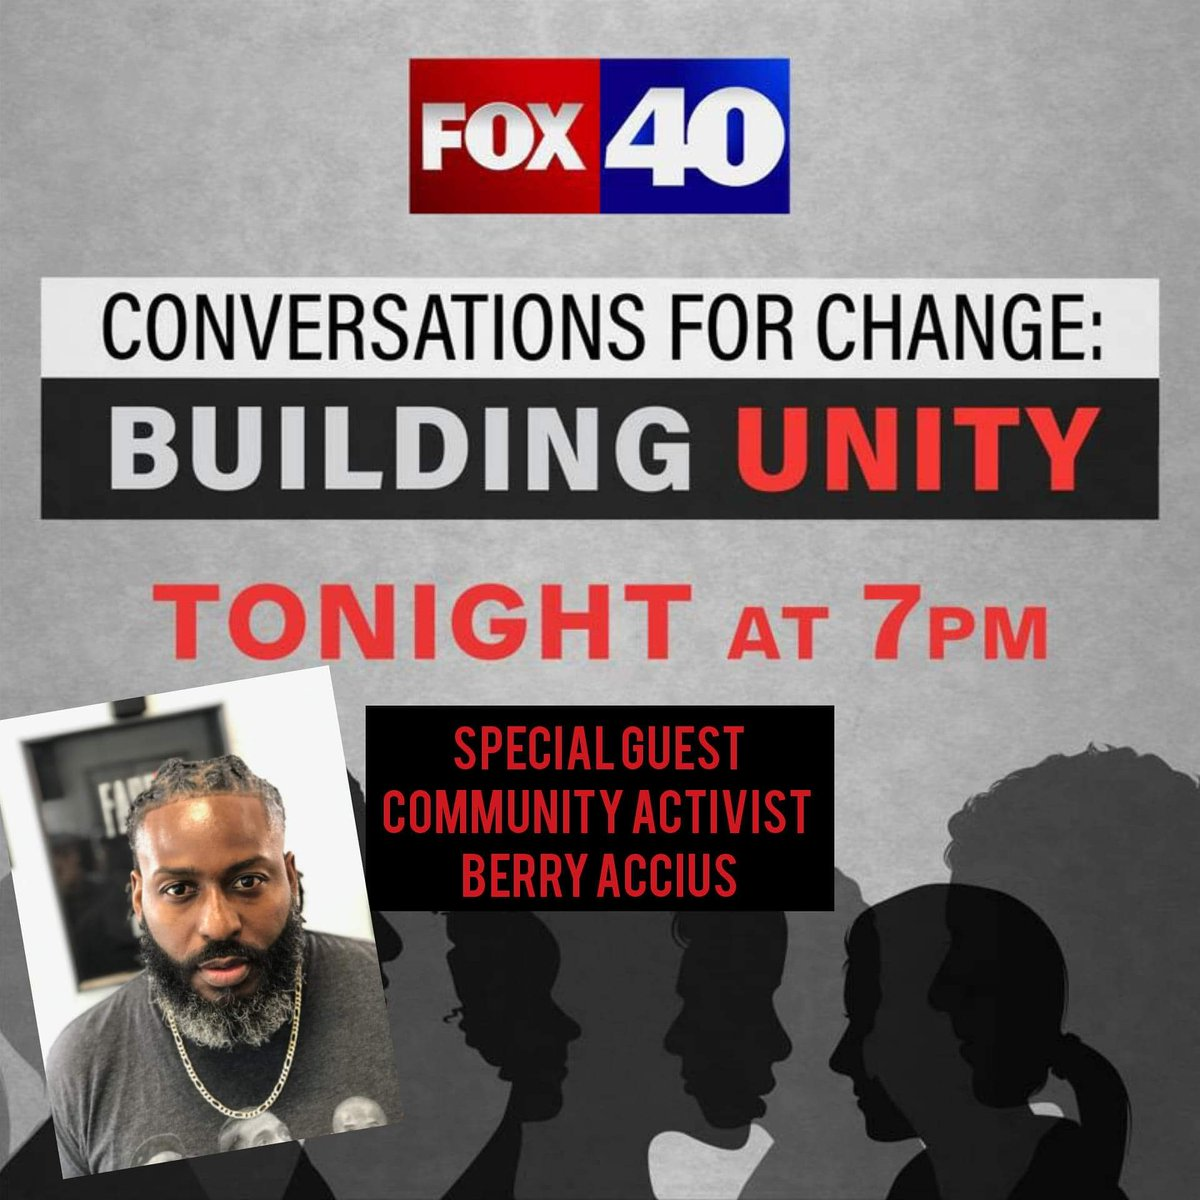 "Today Live on Fox40 at 7pm.......""Conversation for Change:Building Unity"" here goes another one of these things lol. It's always a pleasure for me to lend my perspective especially with these conversations #moretruththanyoucanHandle #blackpowerMatters #BlackBluePrintz https://t.co/sNTv7MmnHr"